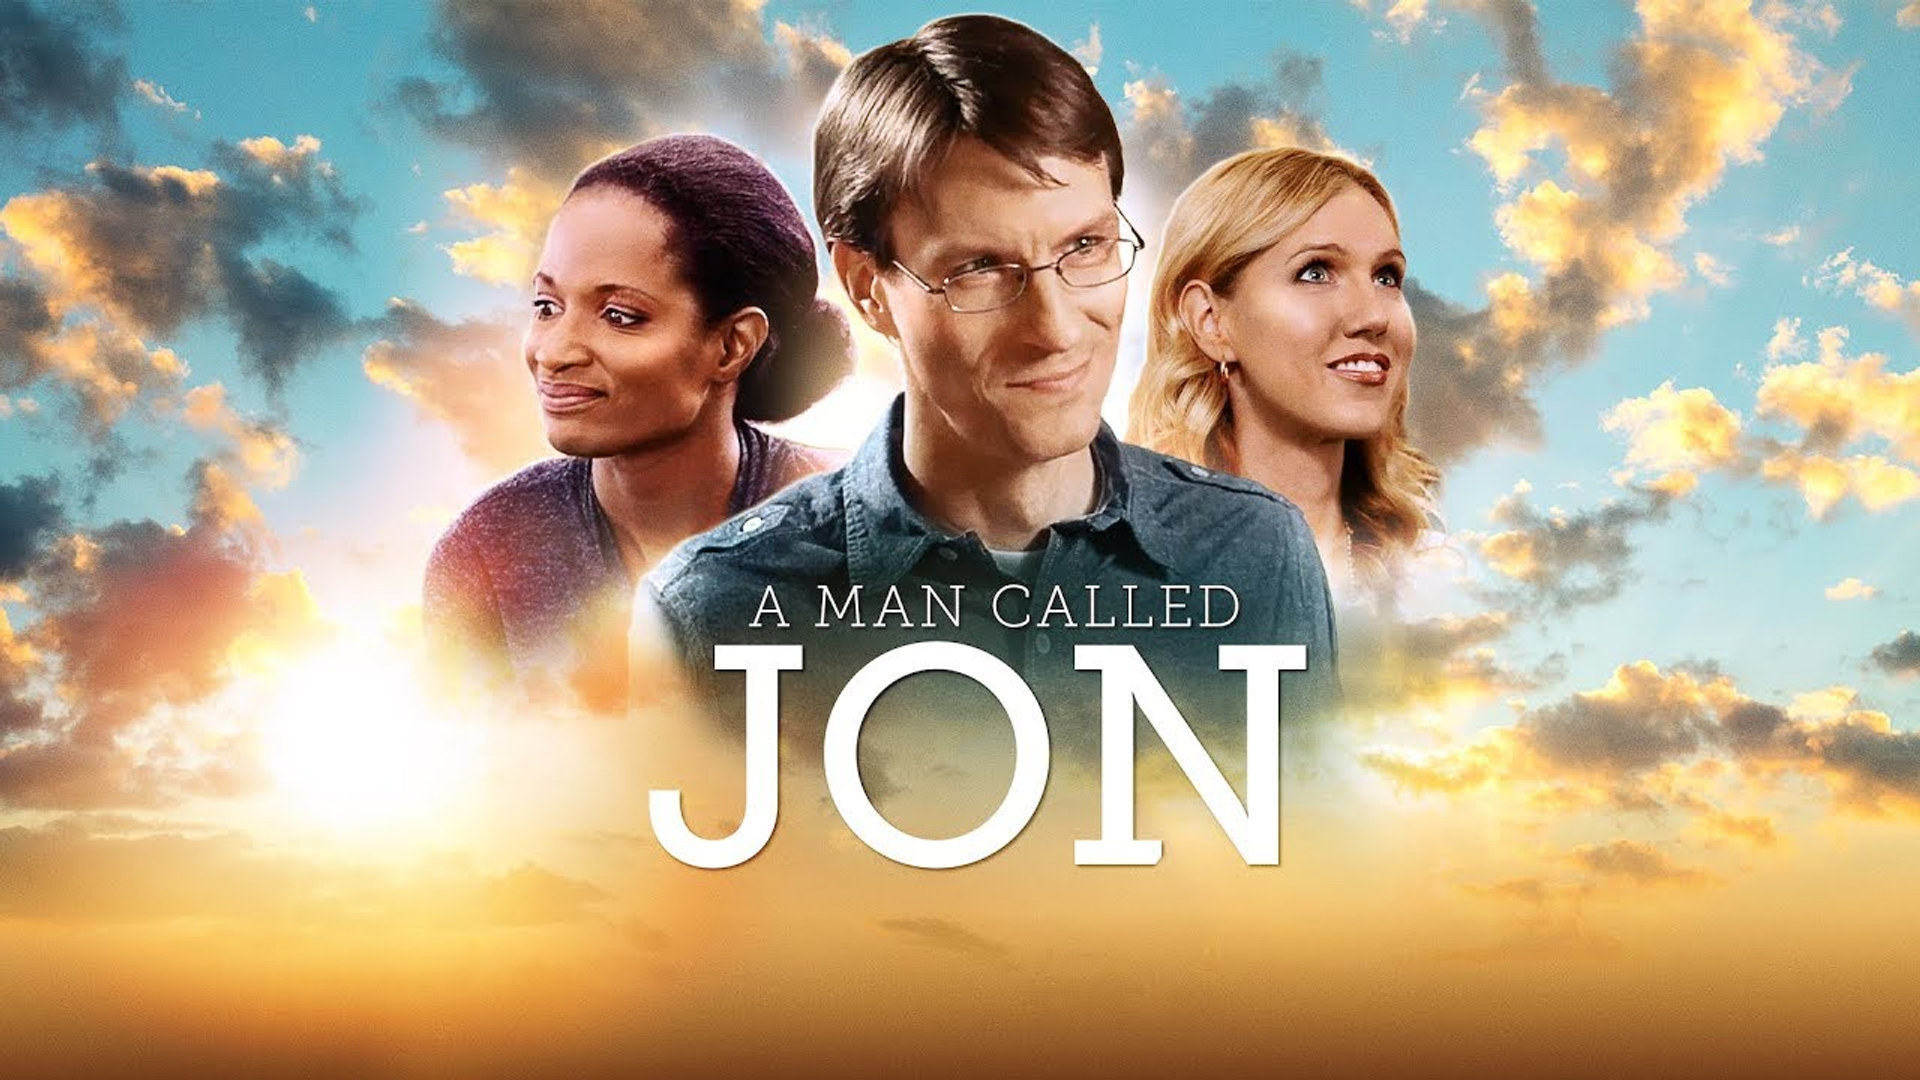 A Man Called Jon Trailer